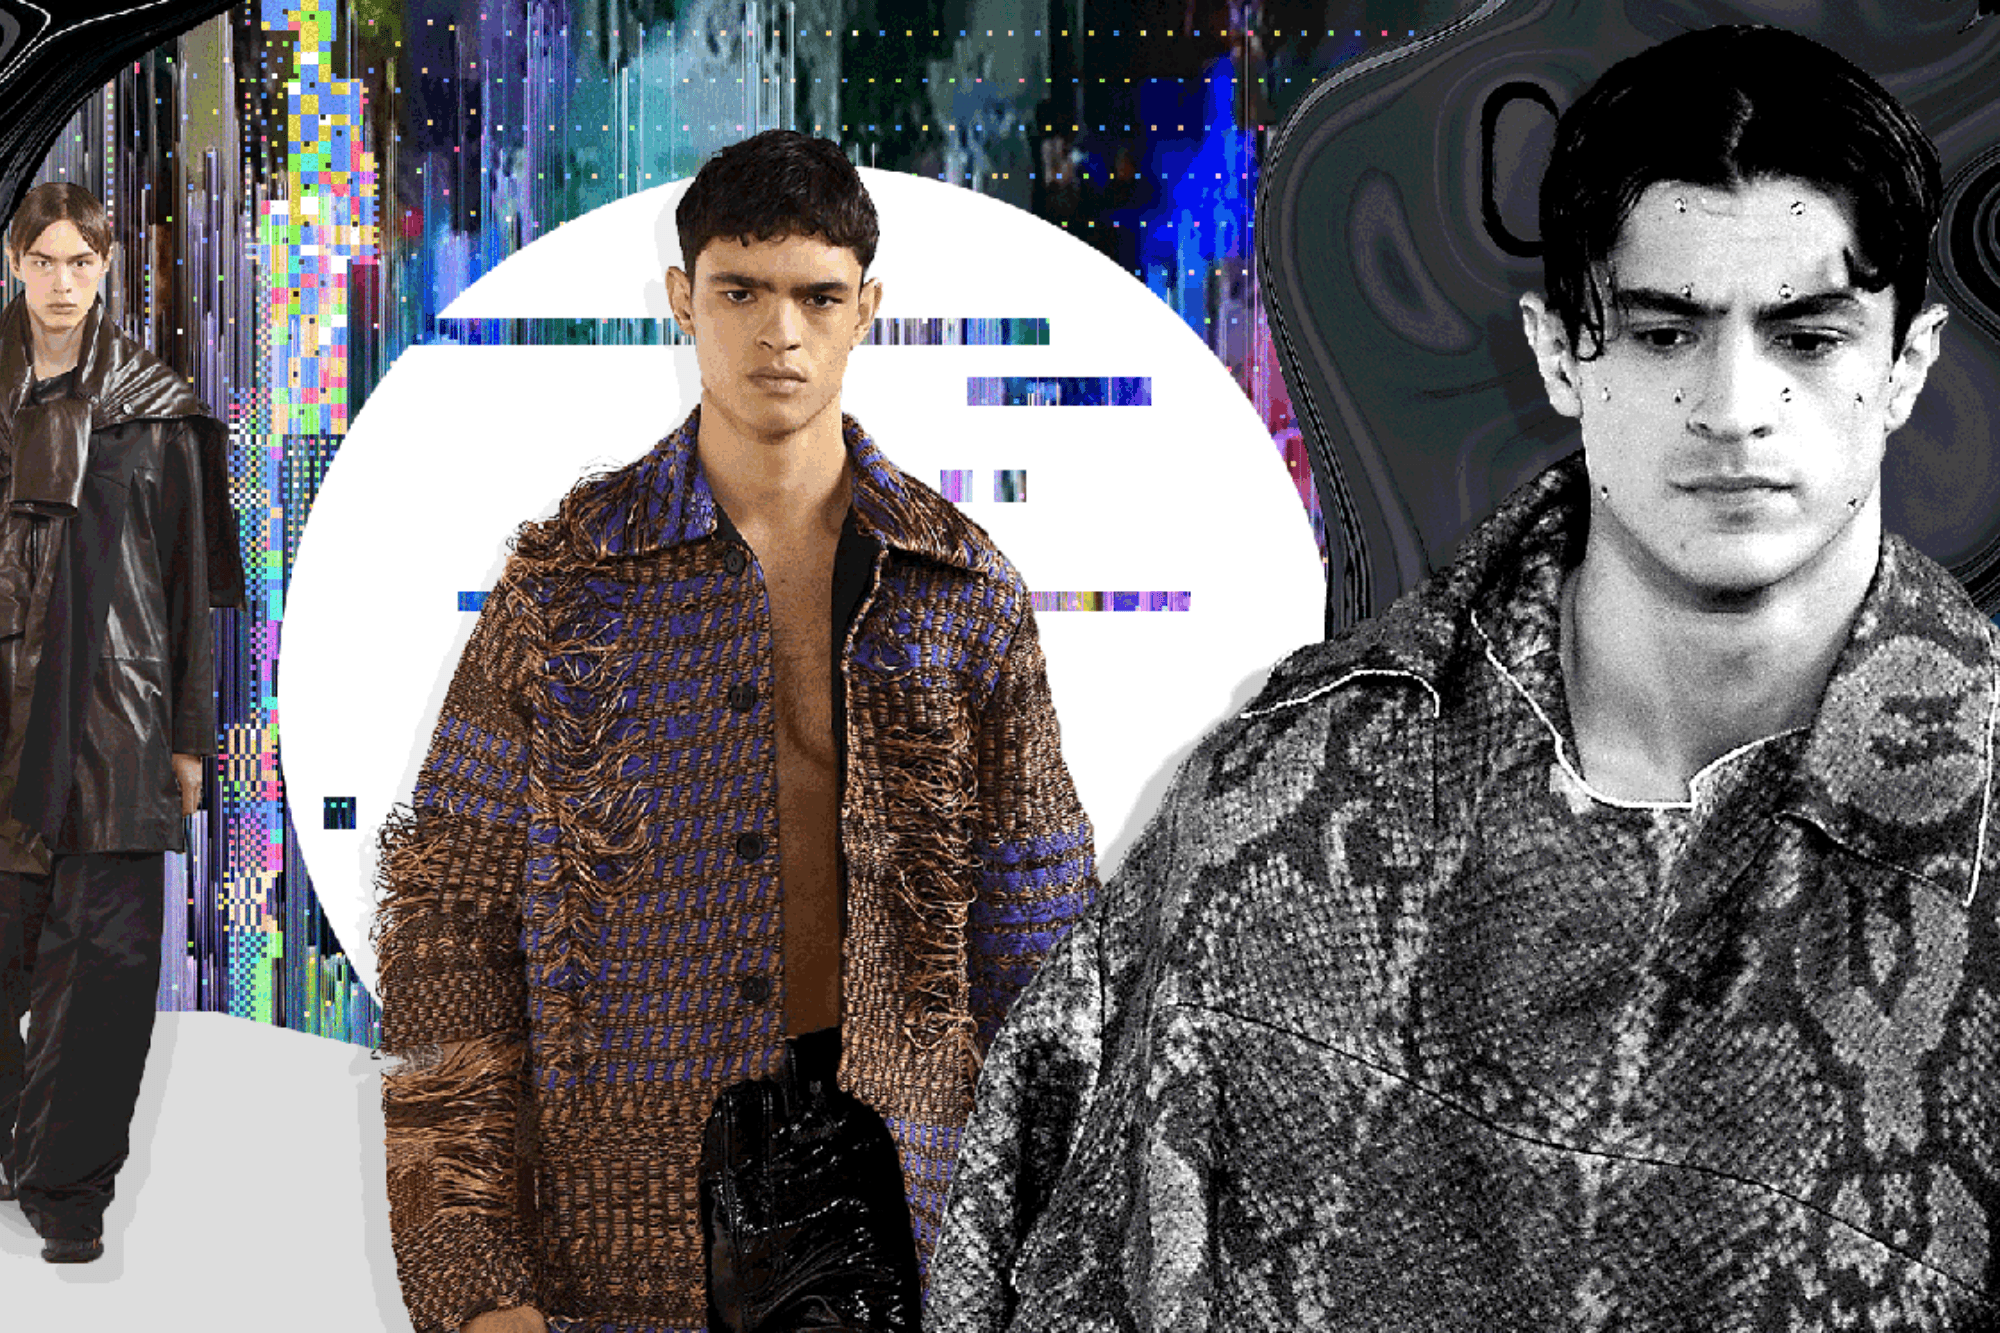 From AI Clothing to Animals on the Runway at Paris Fashion Week